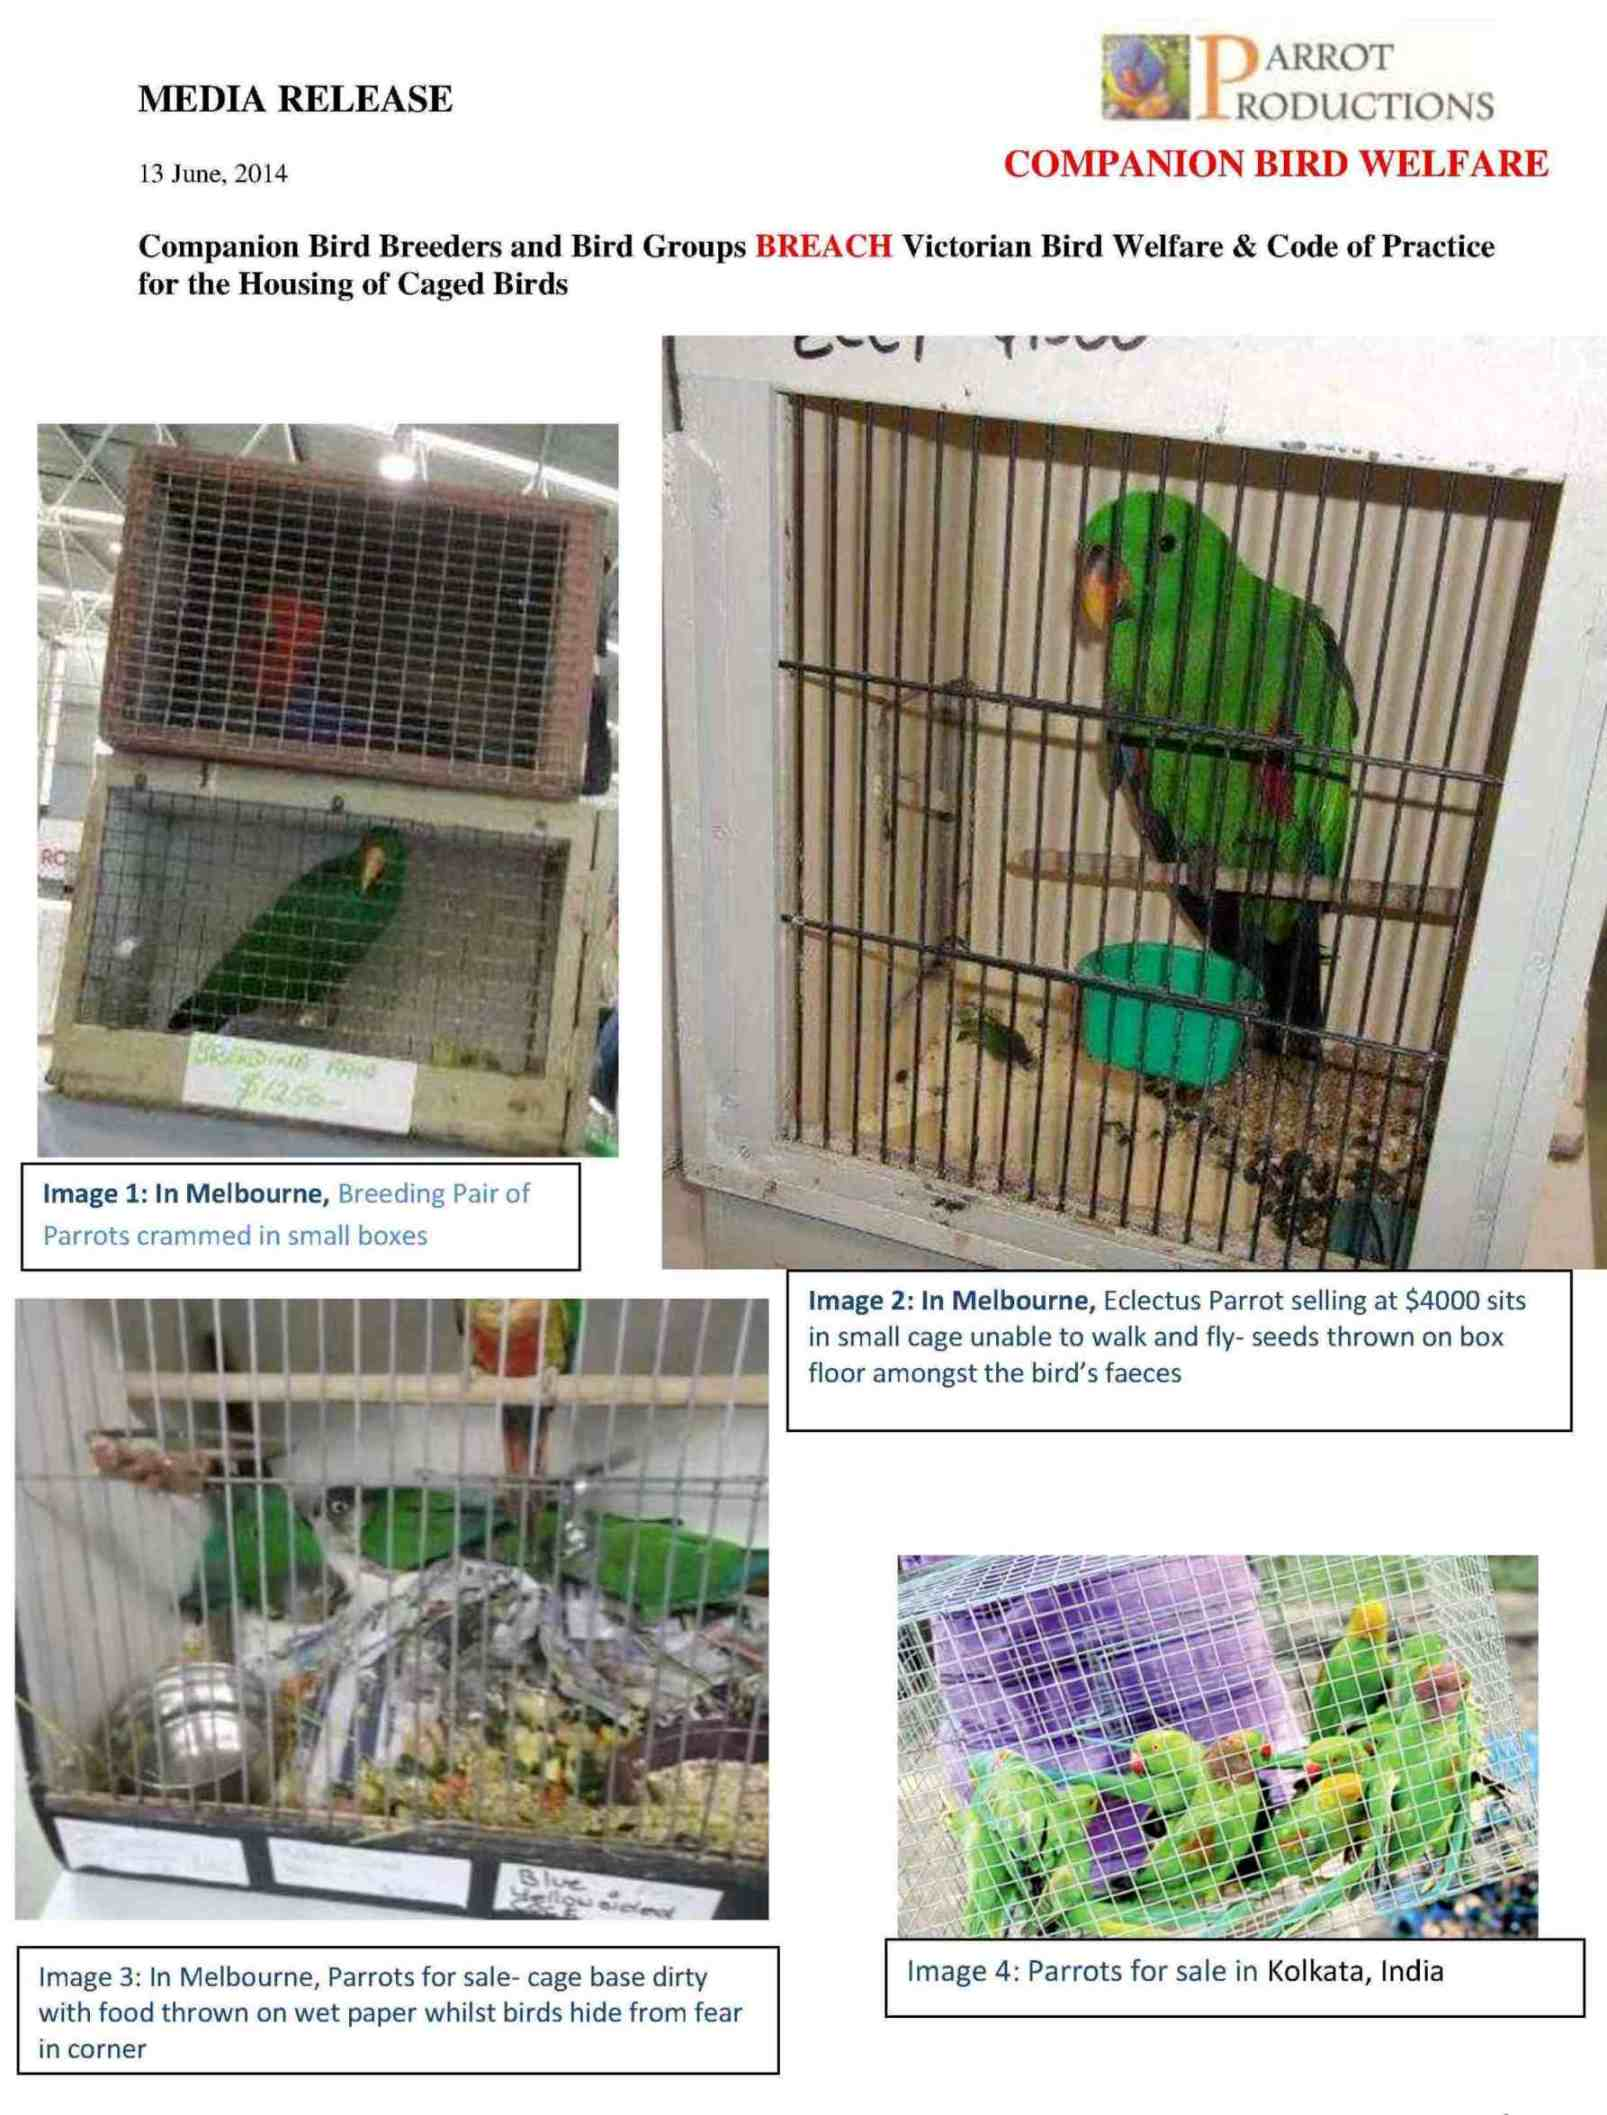 caged bird thesis posts express yourself wonderful world of non human animals final media release bird breeders and bird groups breach code of practice for the